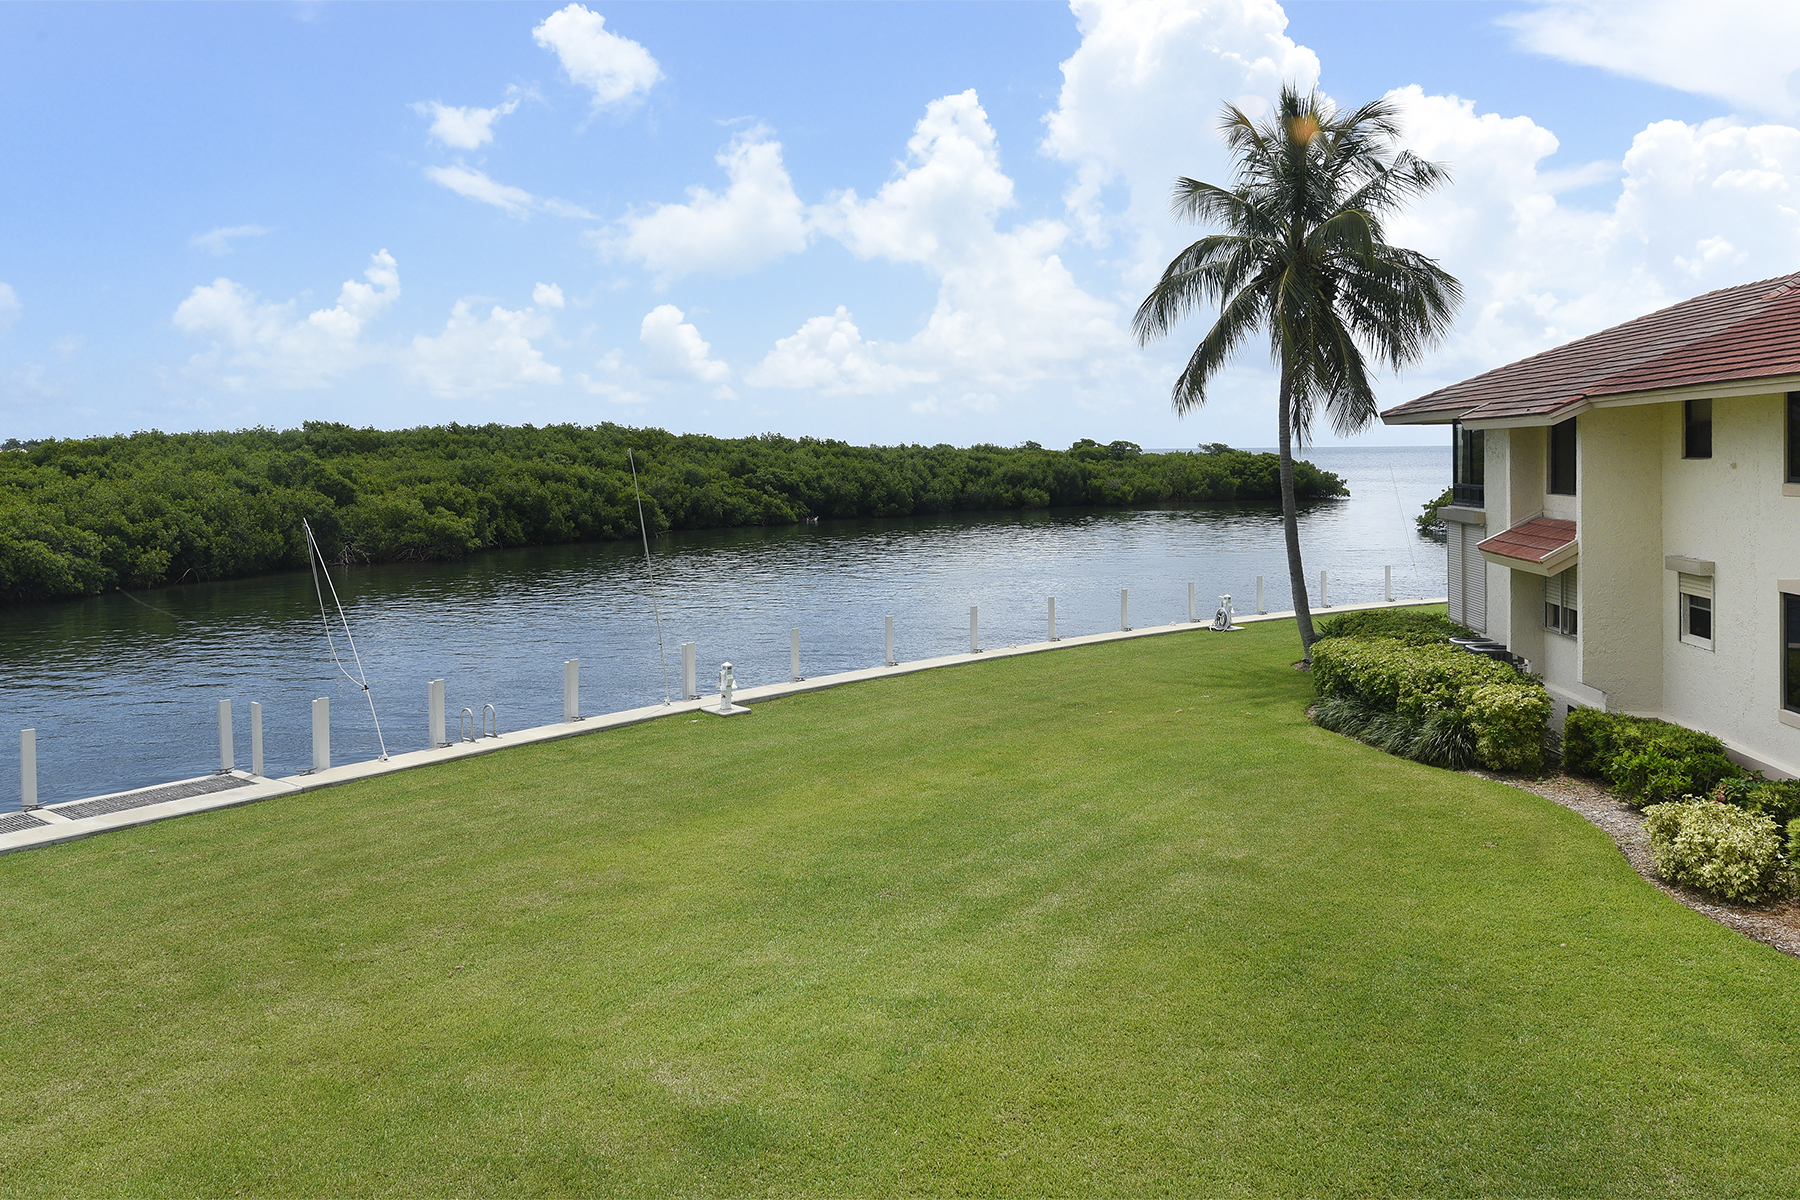 Additional photo for property listing at Beautiful Canalfront Condominium at Ocean Reef 55 Pumpkin Cay Road, Unit B Key Largo, Florida 33037 Stati Uniti